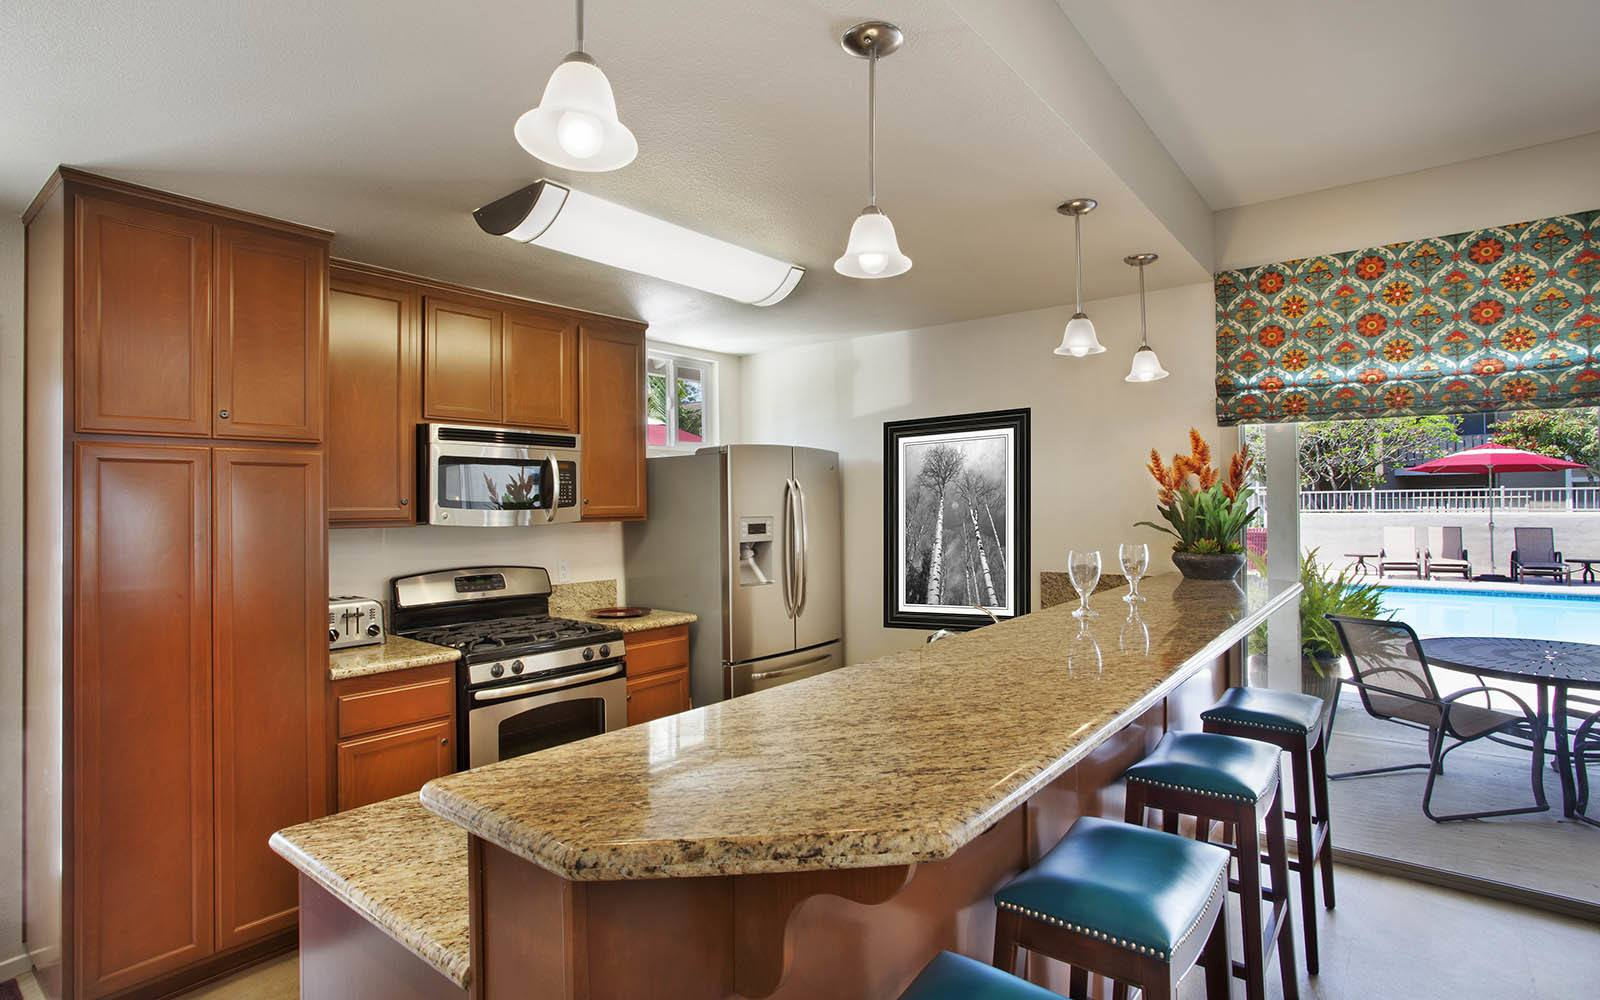 Kitchen at Patterson Place Apartments in Santa Barbara